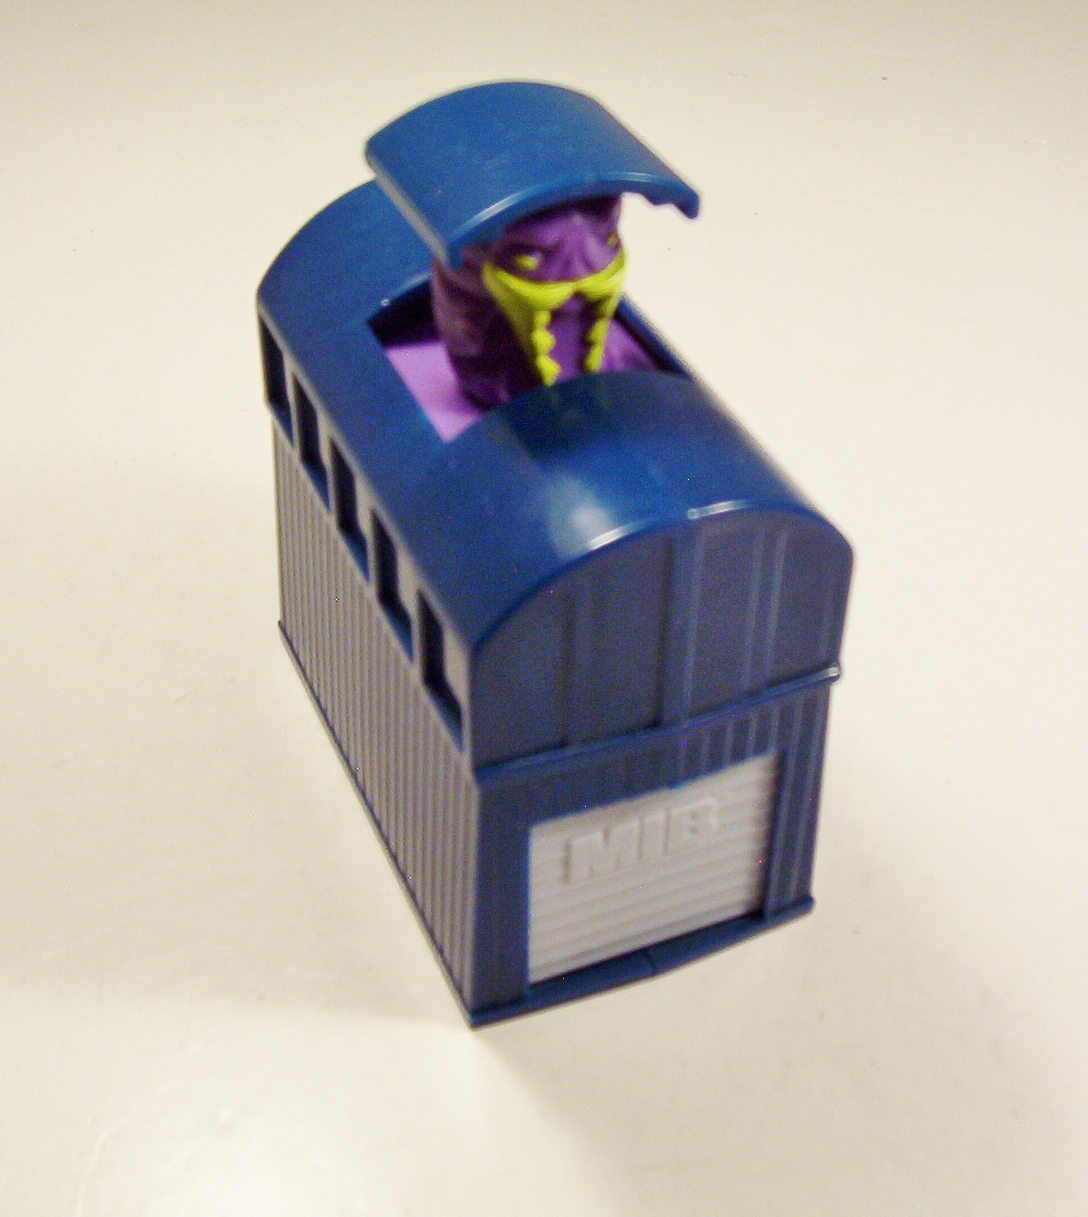 Primary image for Men In Black Blue Building Buster Purple Alien Pop Up Burger King 1998